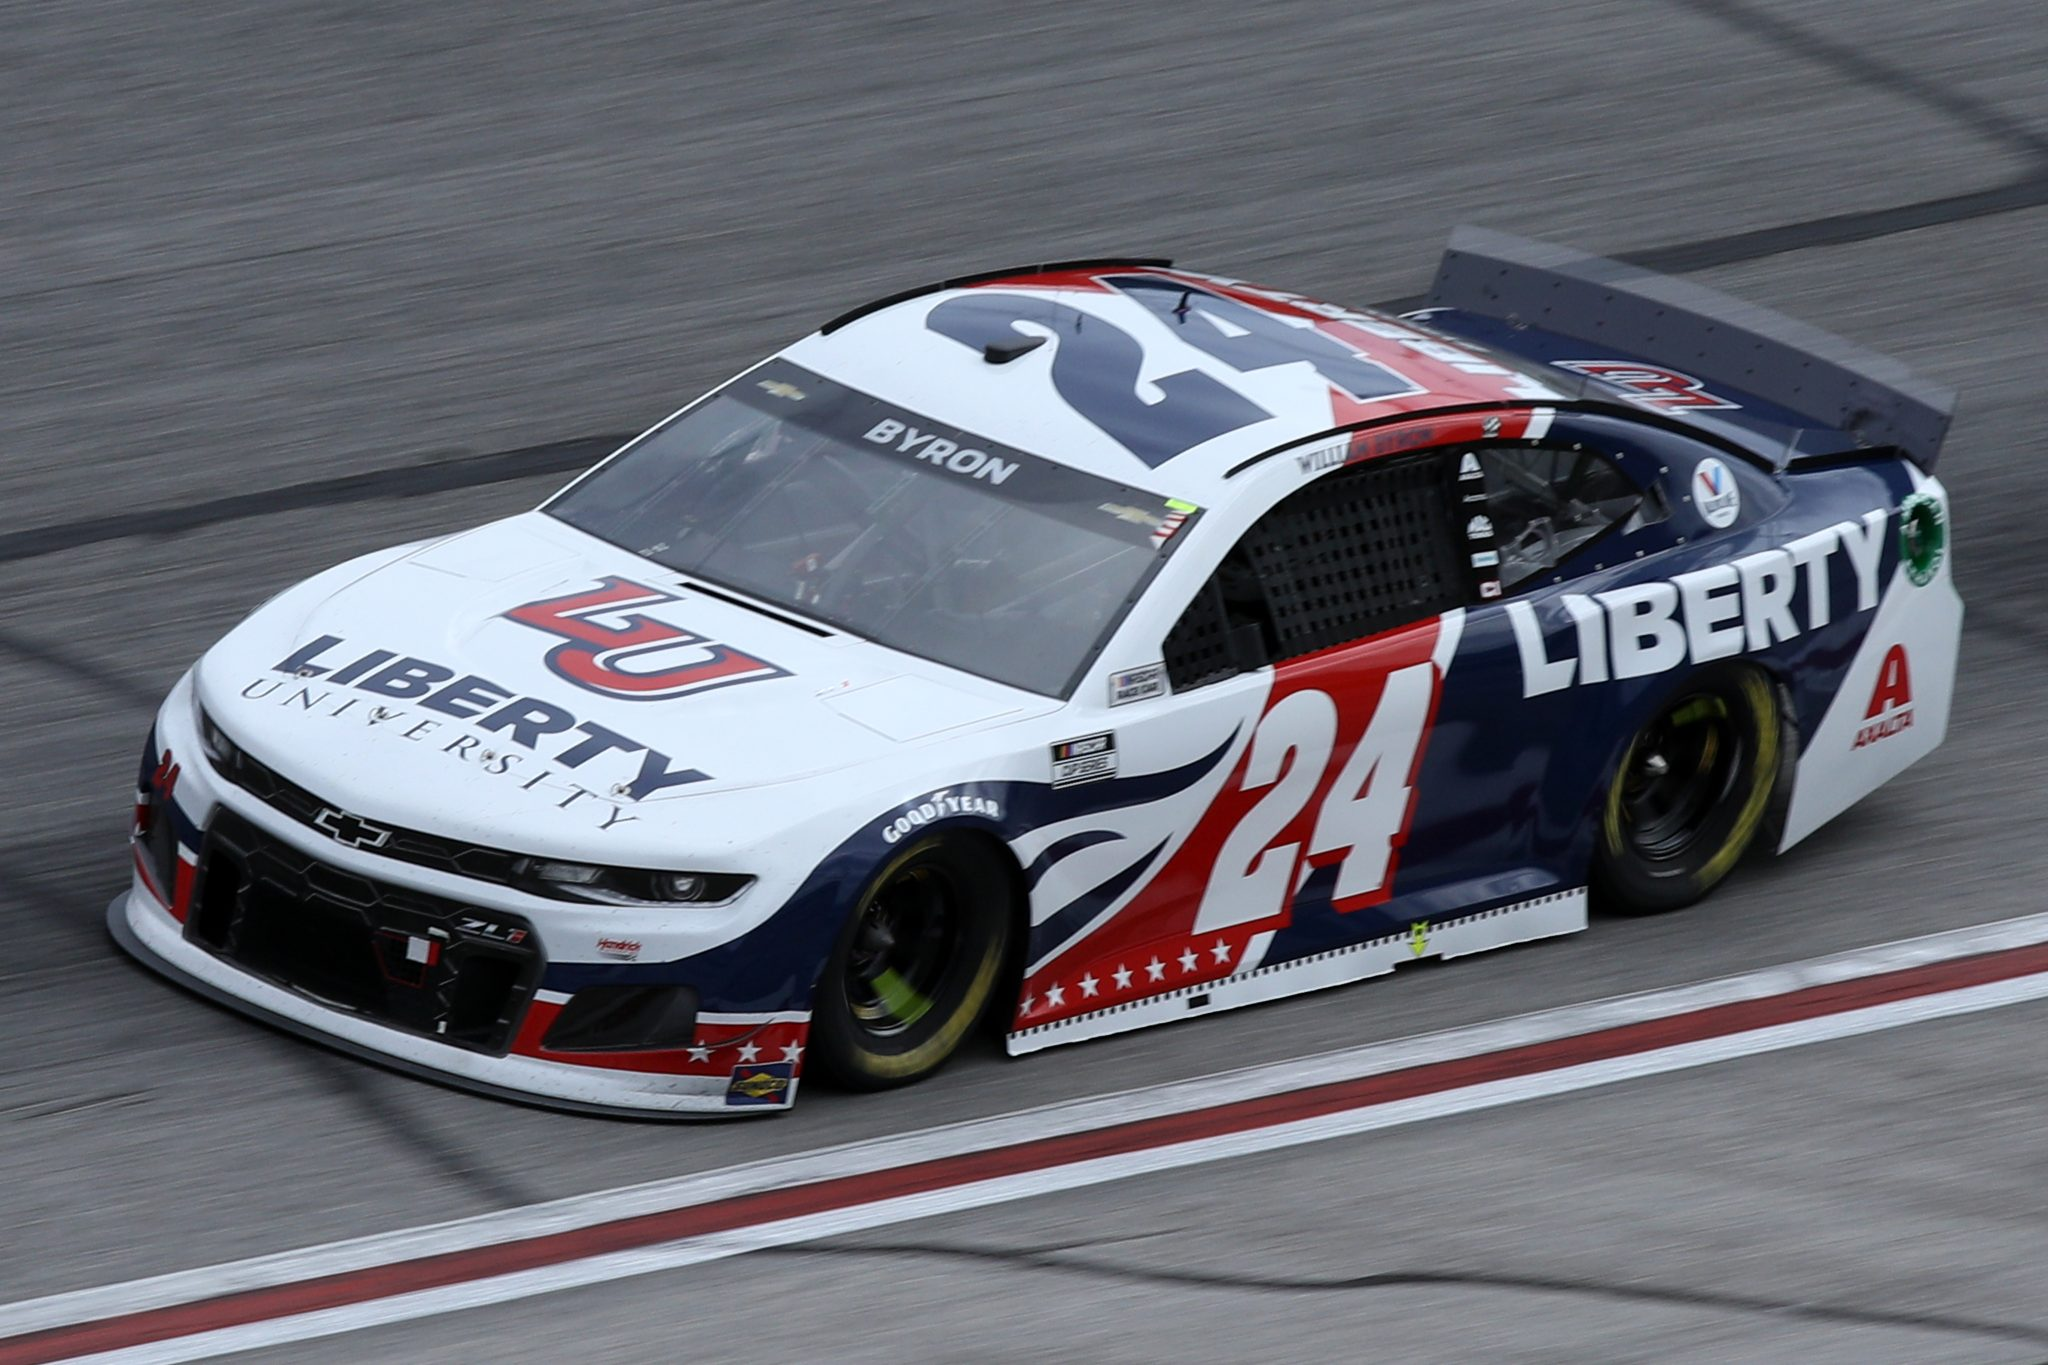 HAMPTON, GEORGIA - MARCH 21: William Byron, driver of the #24 Liberty University Chevrolet, drives during the NASCAR Cup Series Folds of Honor QuikTrip 500 at Atlanta Motor Speedway on March 21, 2021 in Hampton, Georgia. (Photo by Sean Gardner/Getty Images) | Getty Images